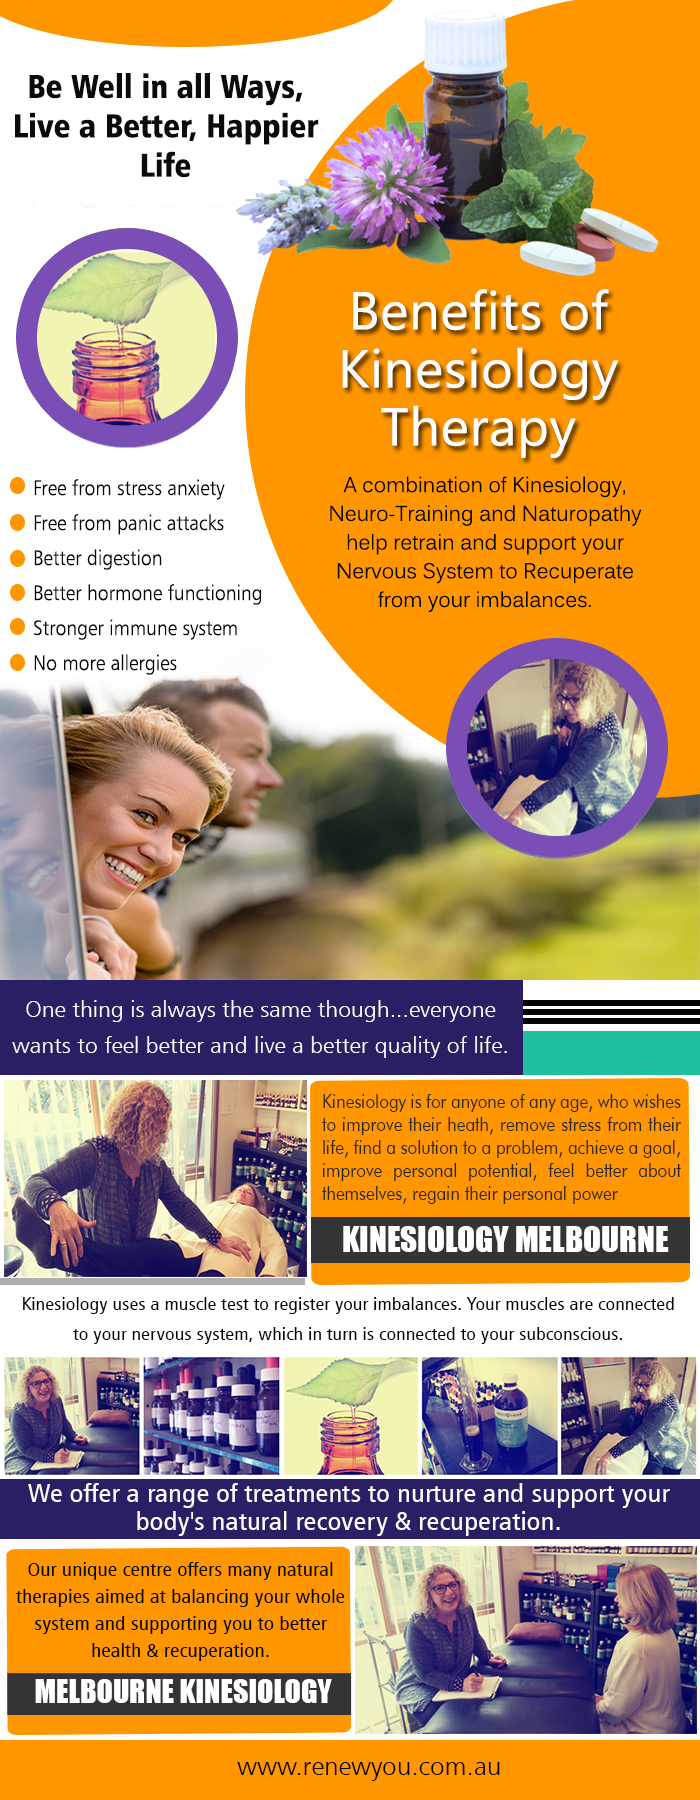 Benefits of Kinesiology Therapy.jpg